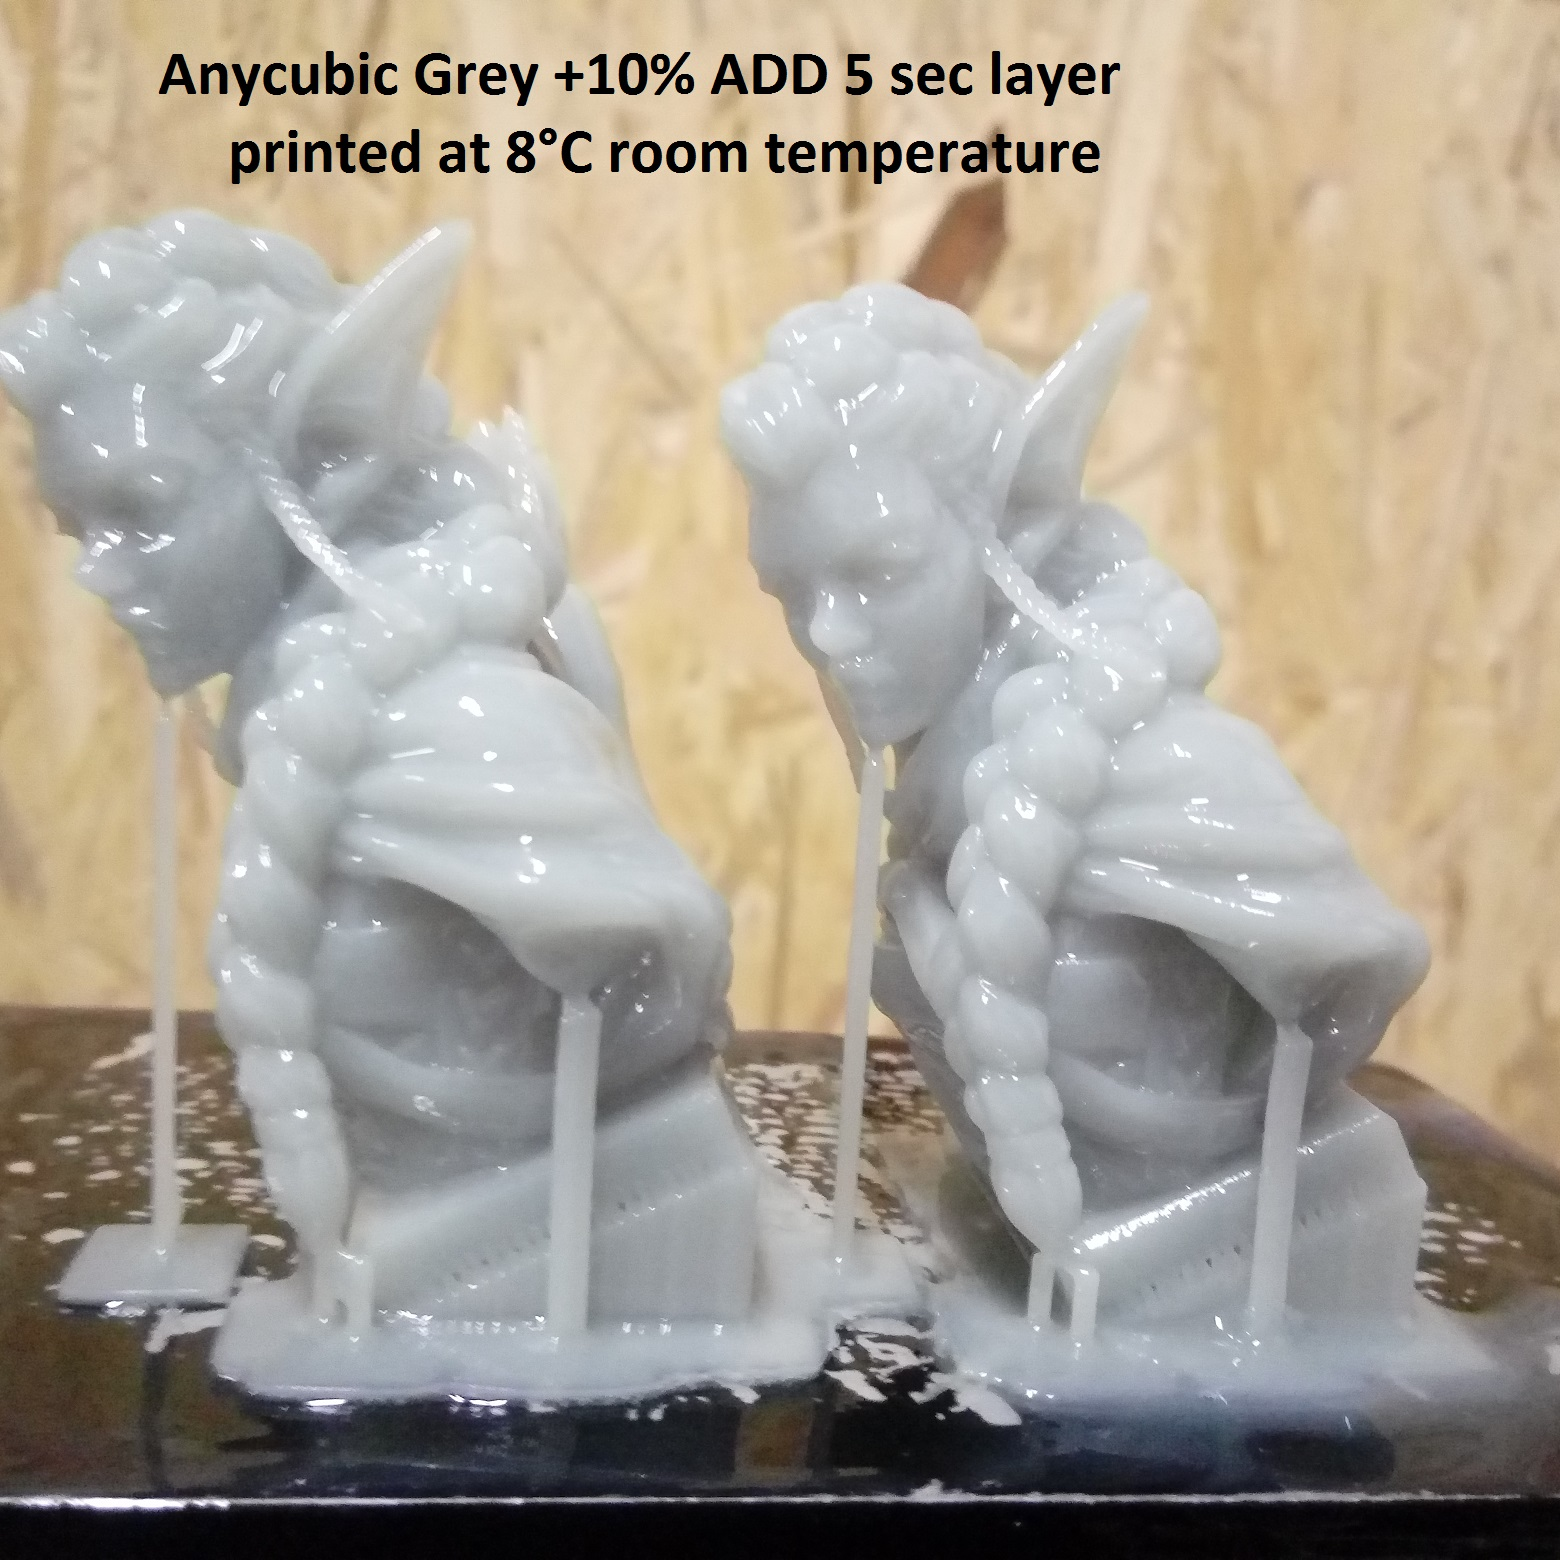 ADDX anti sticky additive for DLP/LCD/SLA resins-500ml